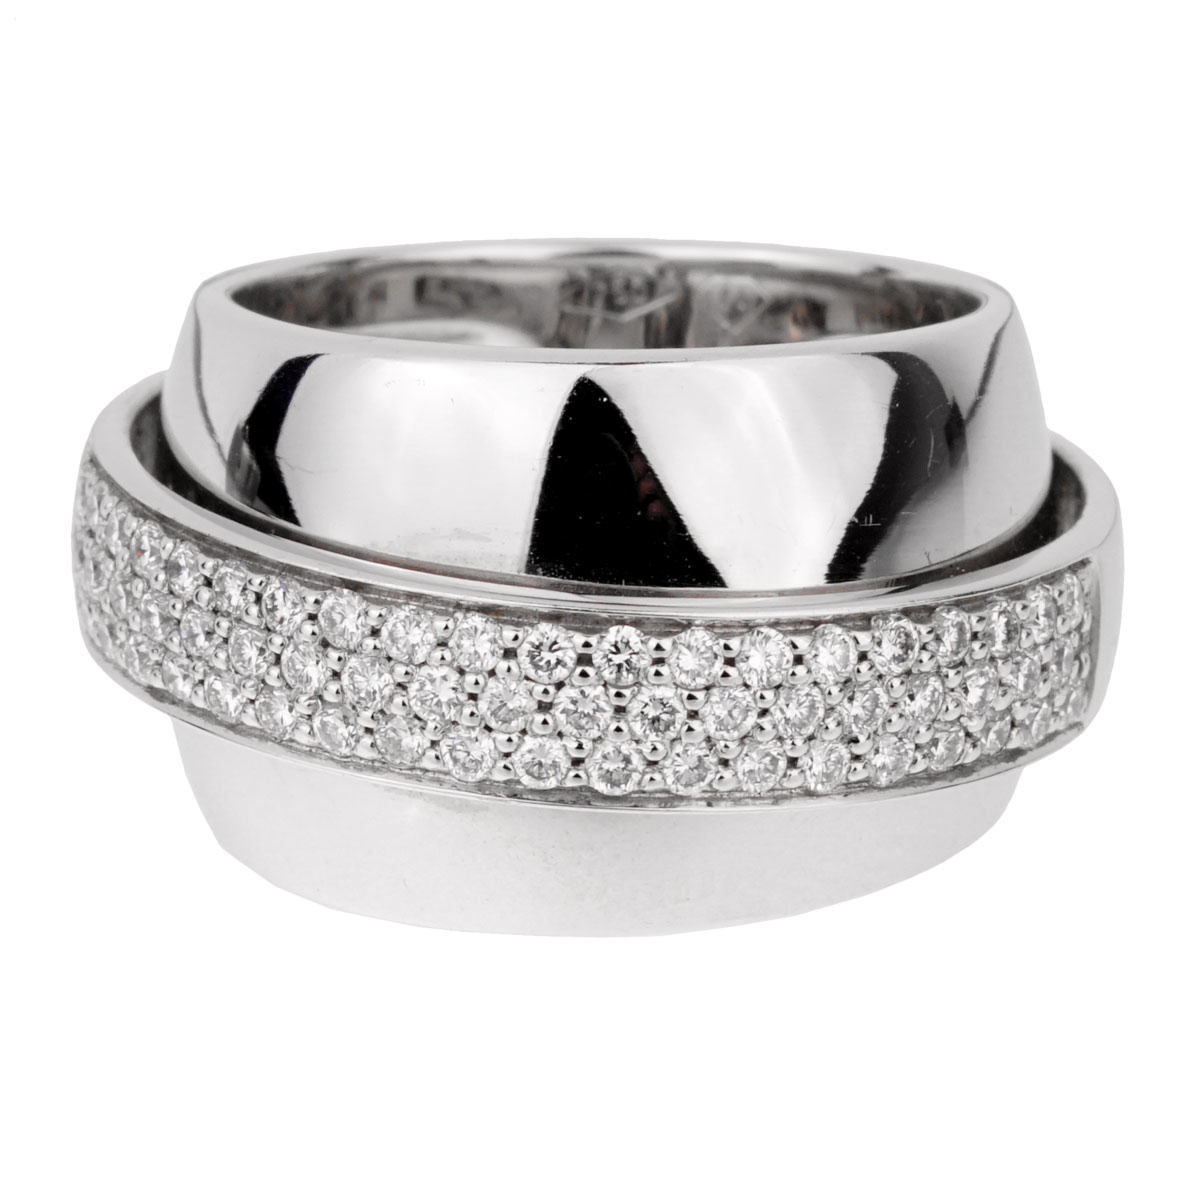 Piaget Possession Pave Diamond White Gold Ring Sz 5 3/4 - Piaget Jewelry